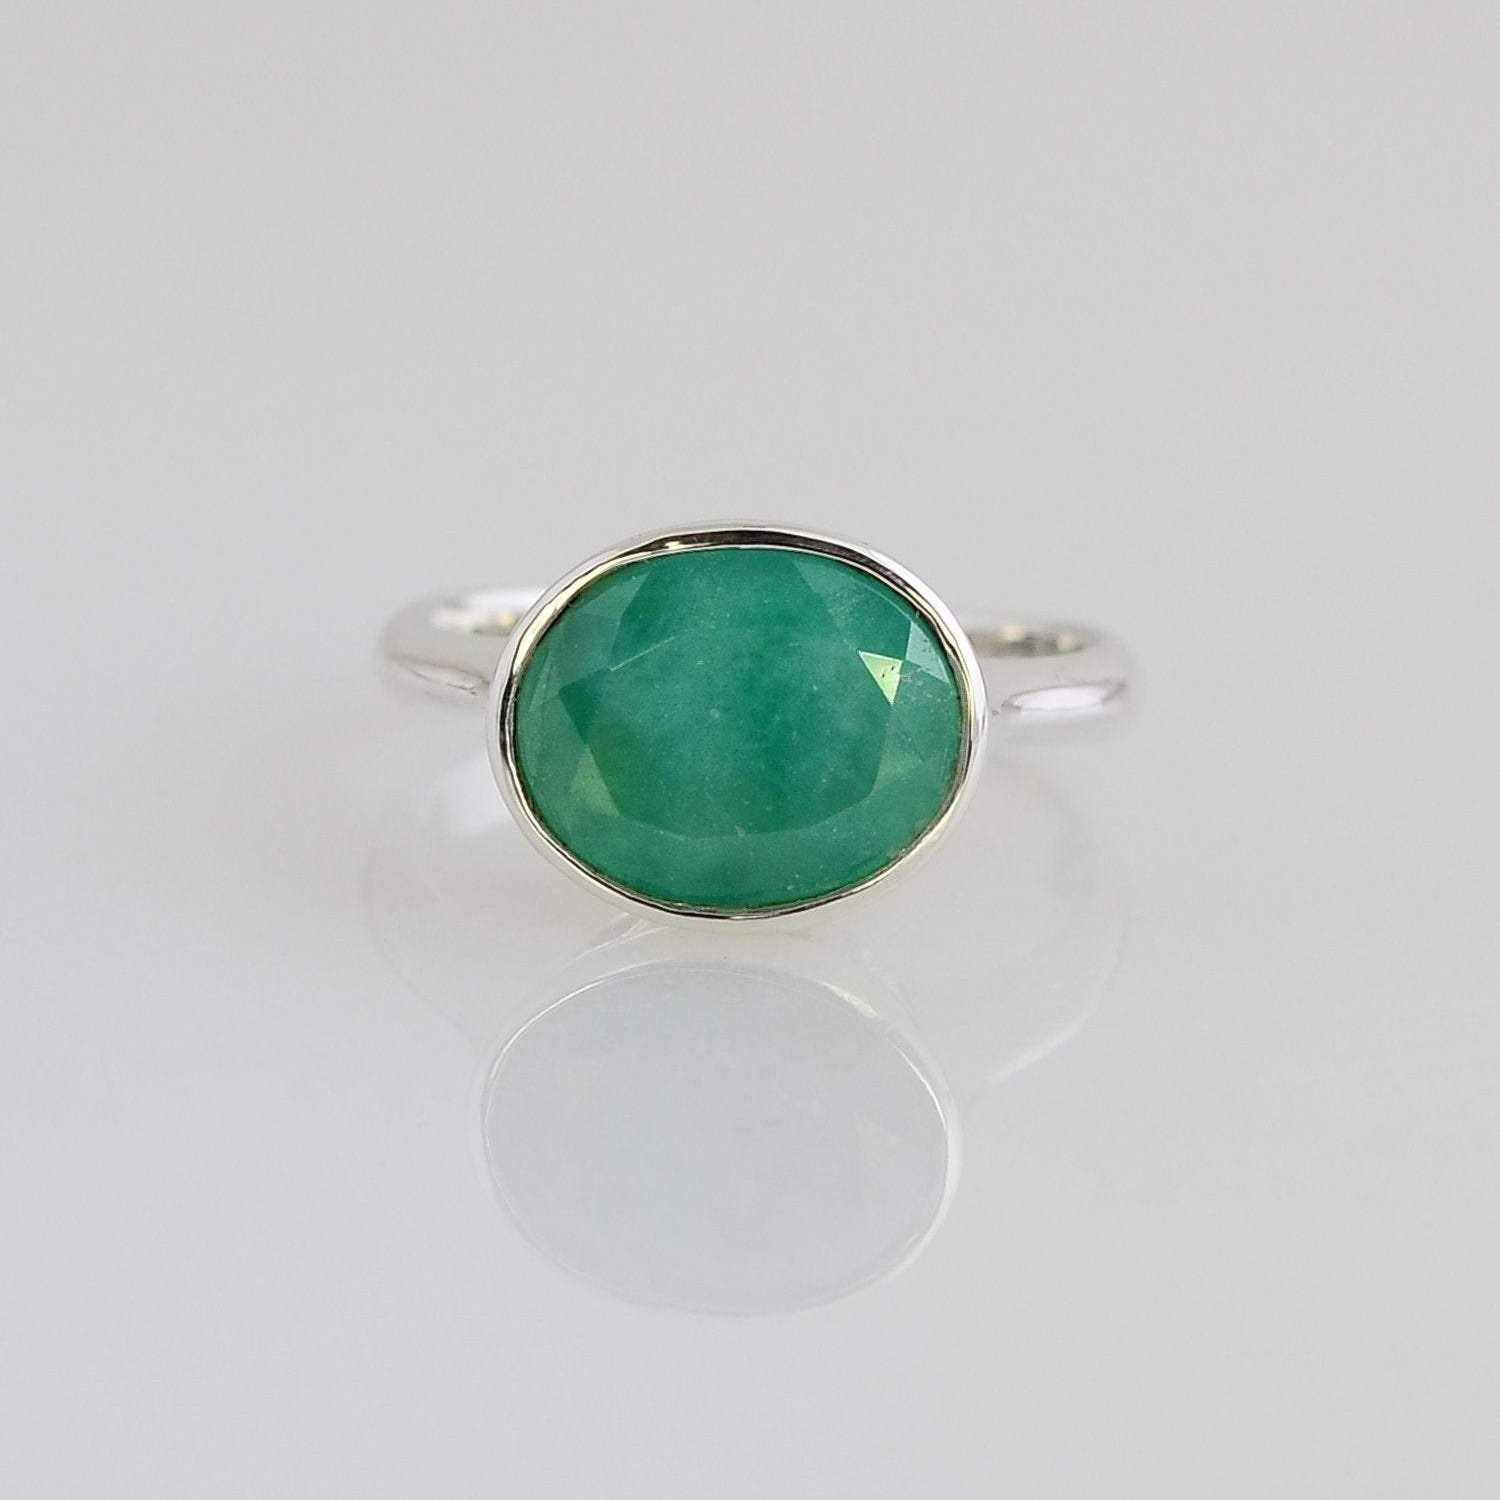 Gemstone ring - Gems Ring - Emerald Ring - Statement Ring - Gold Ring - Oval cut Ring - Custom Design ring - Green Emerald